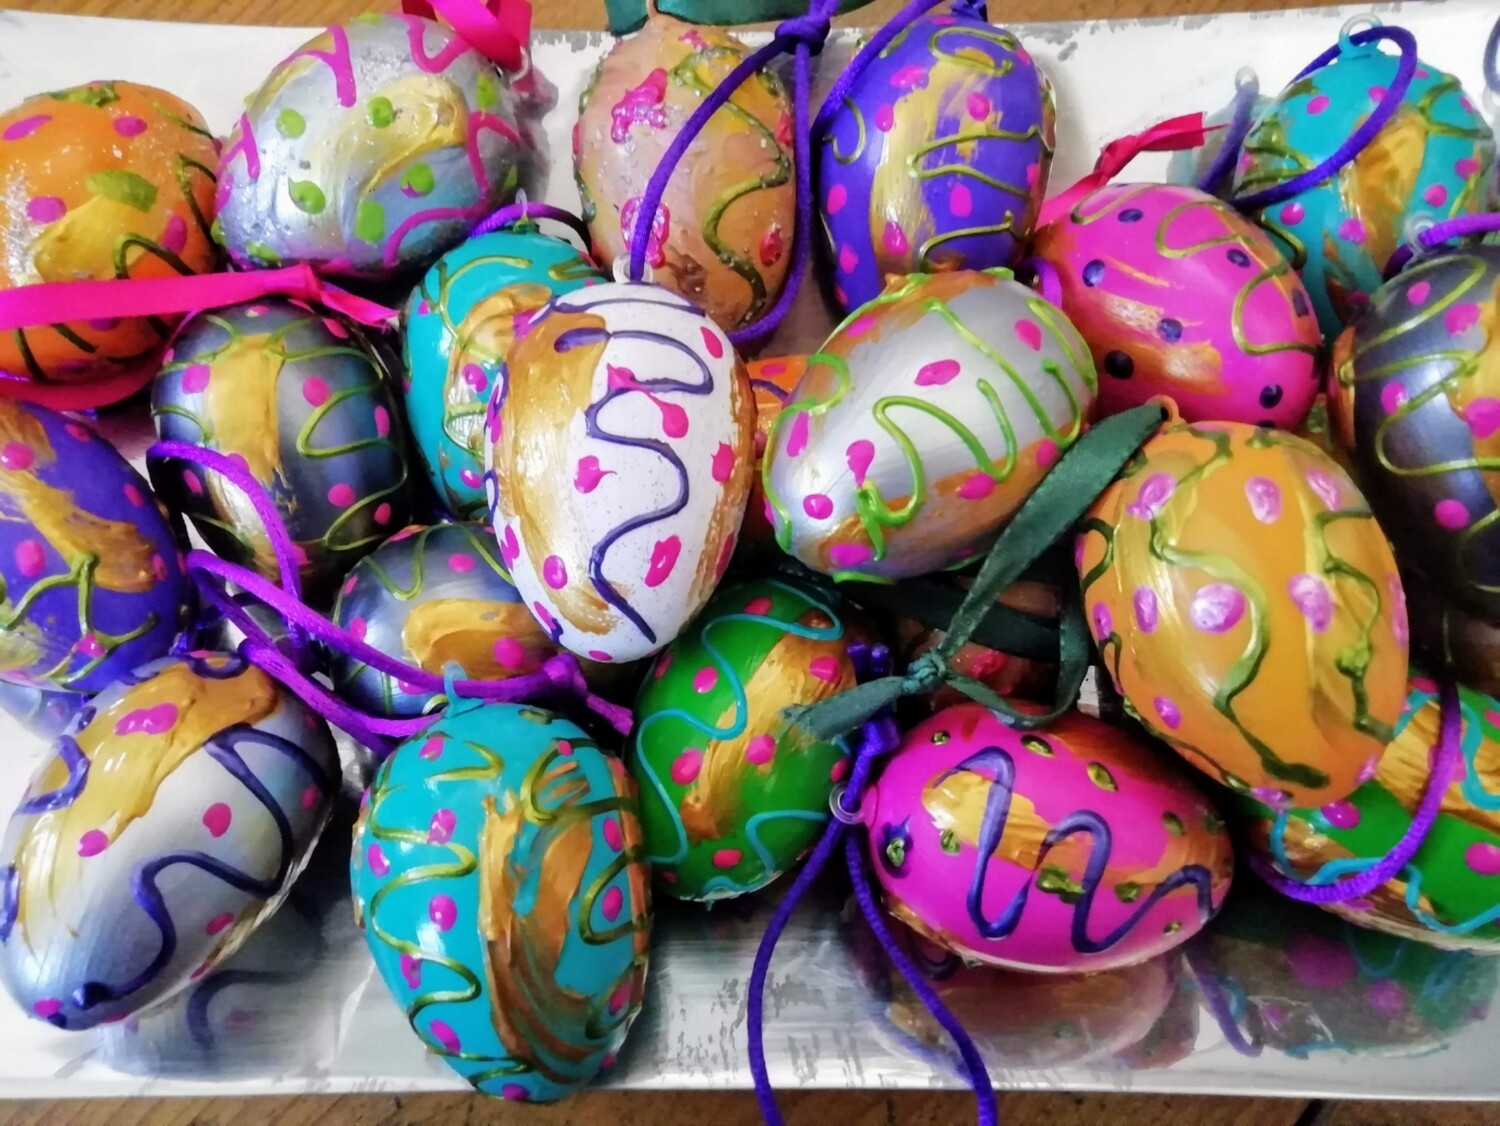 Easter Eggs - Hand painted by Corinna Kirchhof